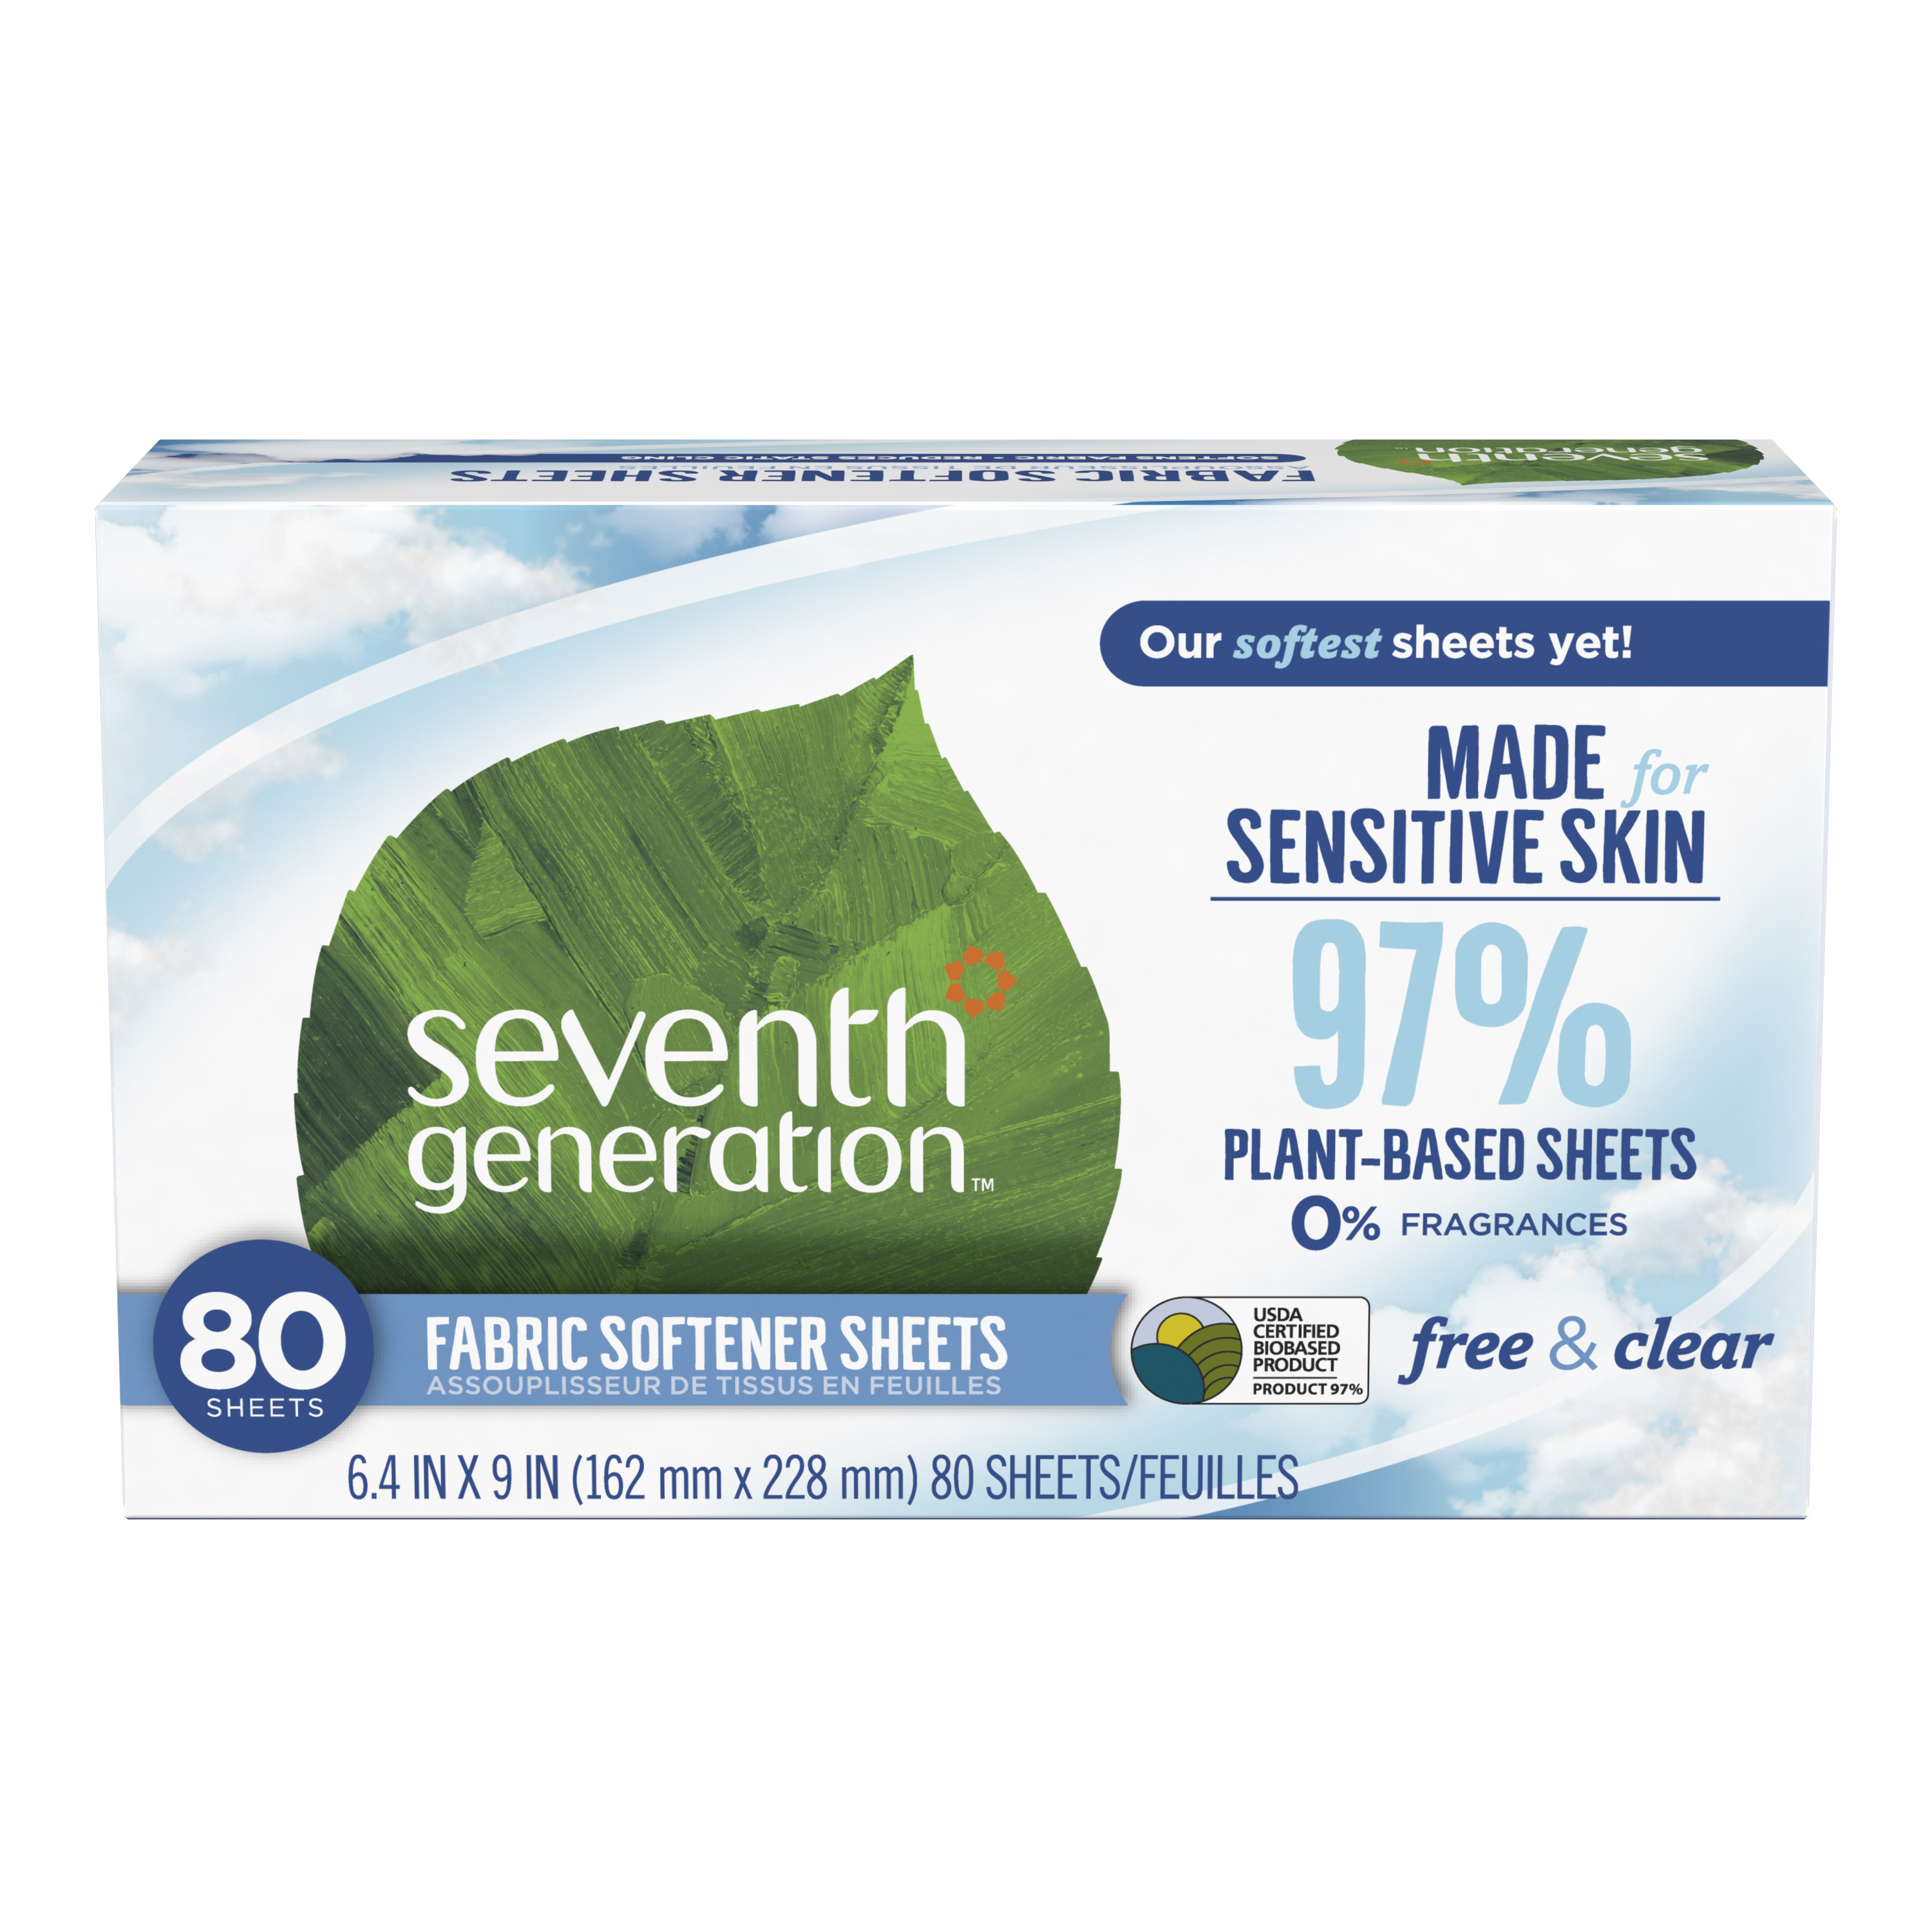 (2 pack) Seventh Generation Free & Clear Fragrance Free Fabric Softener Sheets, 80 sheets